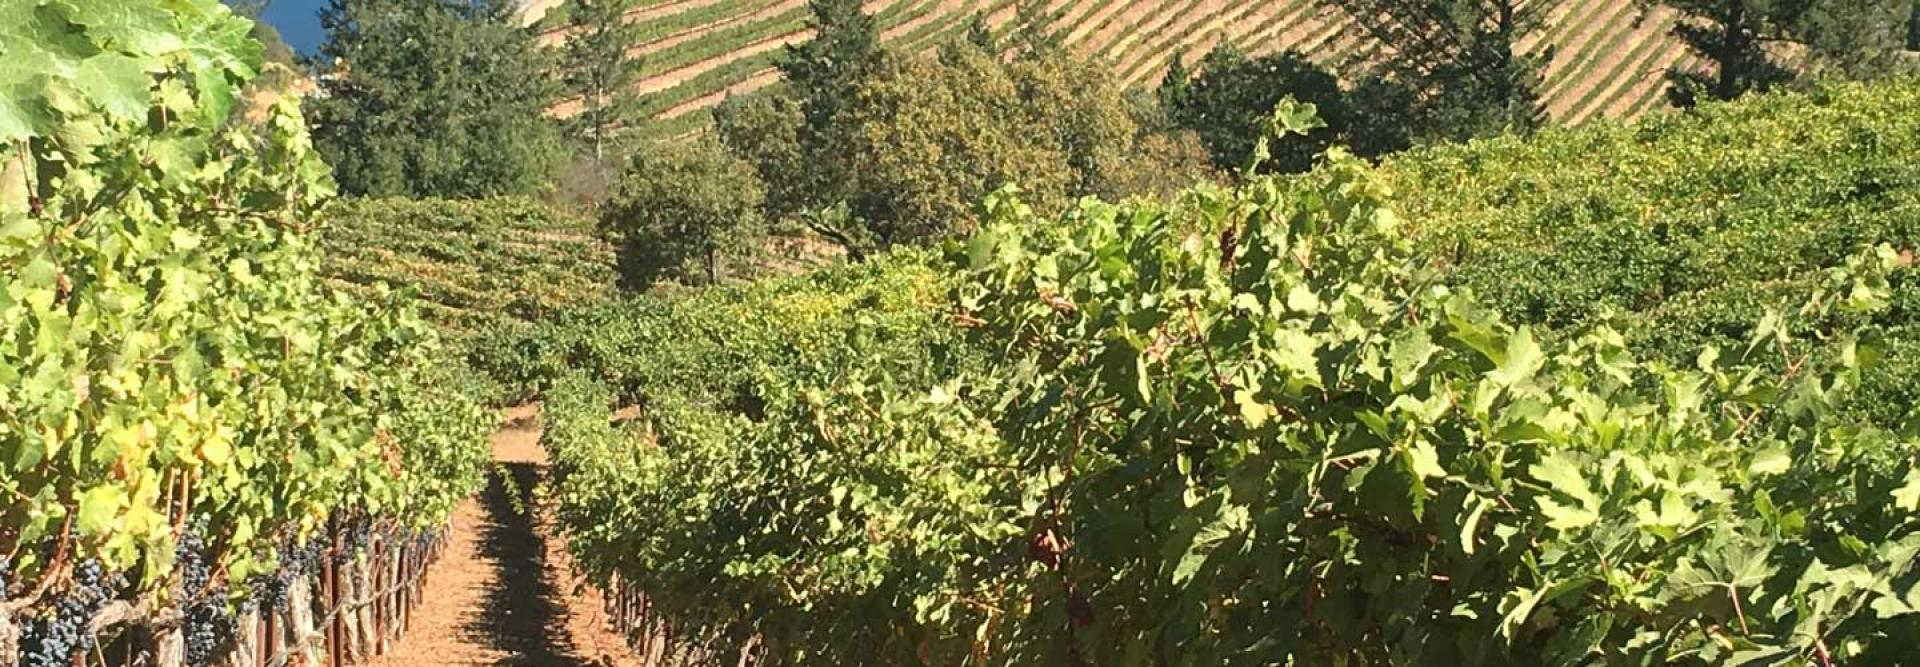 Vineyard Hill Vines at Immortal Estate, an Evolution of Hidden Ridge